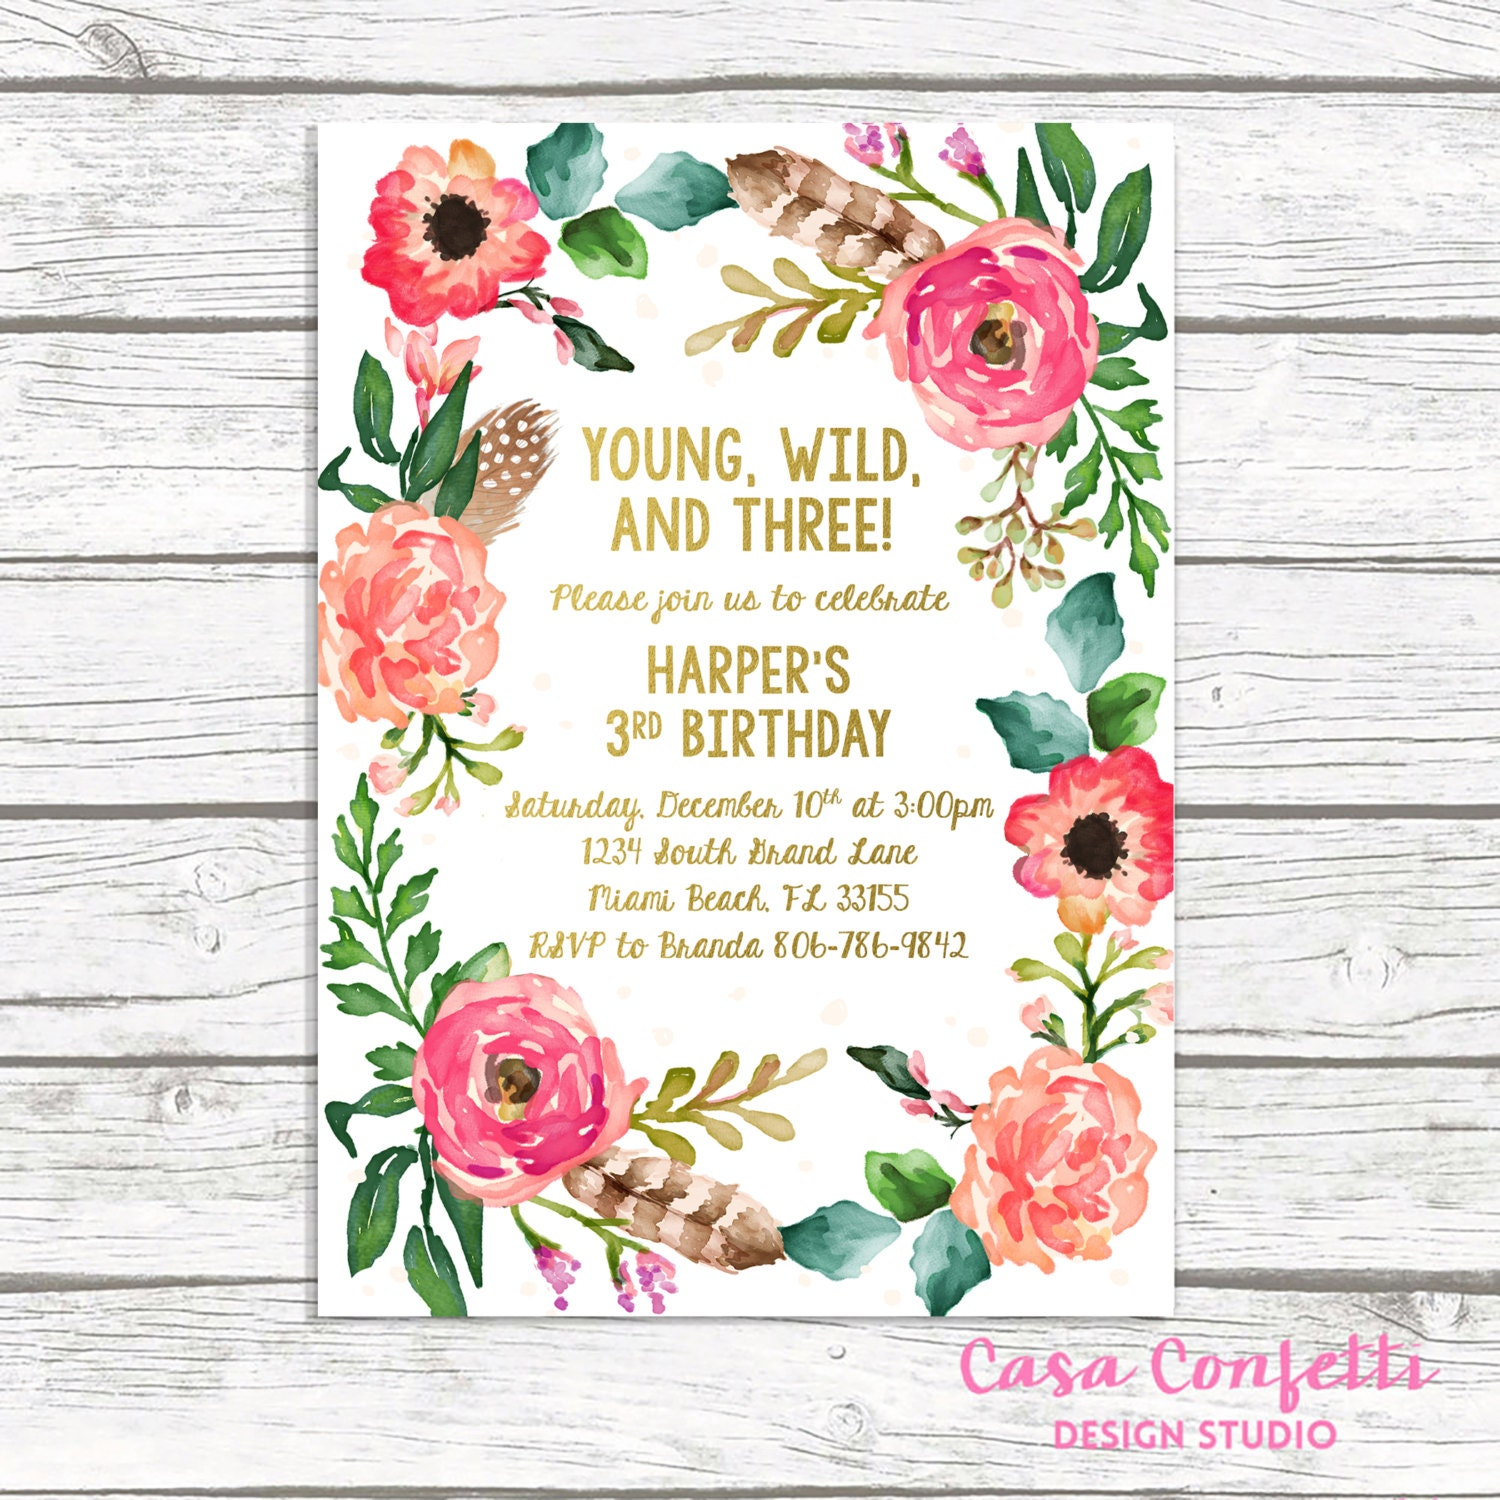 Young wild and three birthday invitation wild and three boho young wild and three birthday invitation wild and three boho birthday invitation girl invite third 3rd birthday floral wreath printable filmwisefo Images